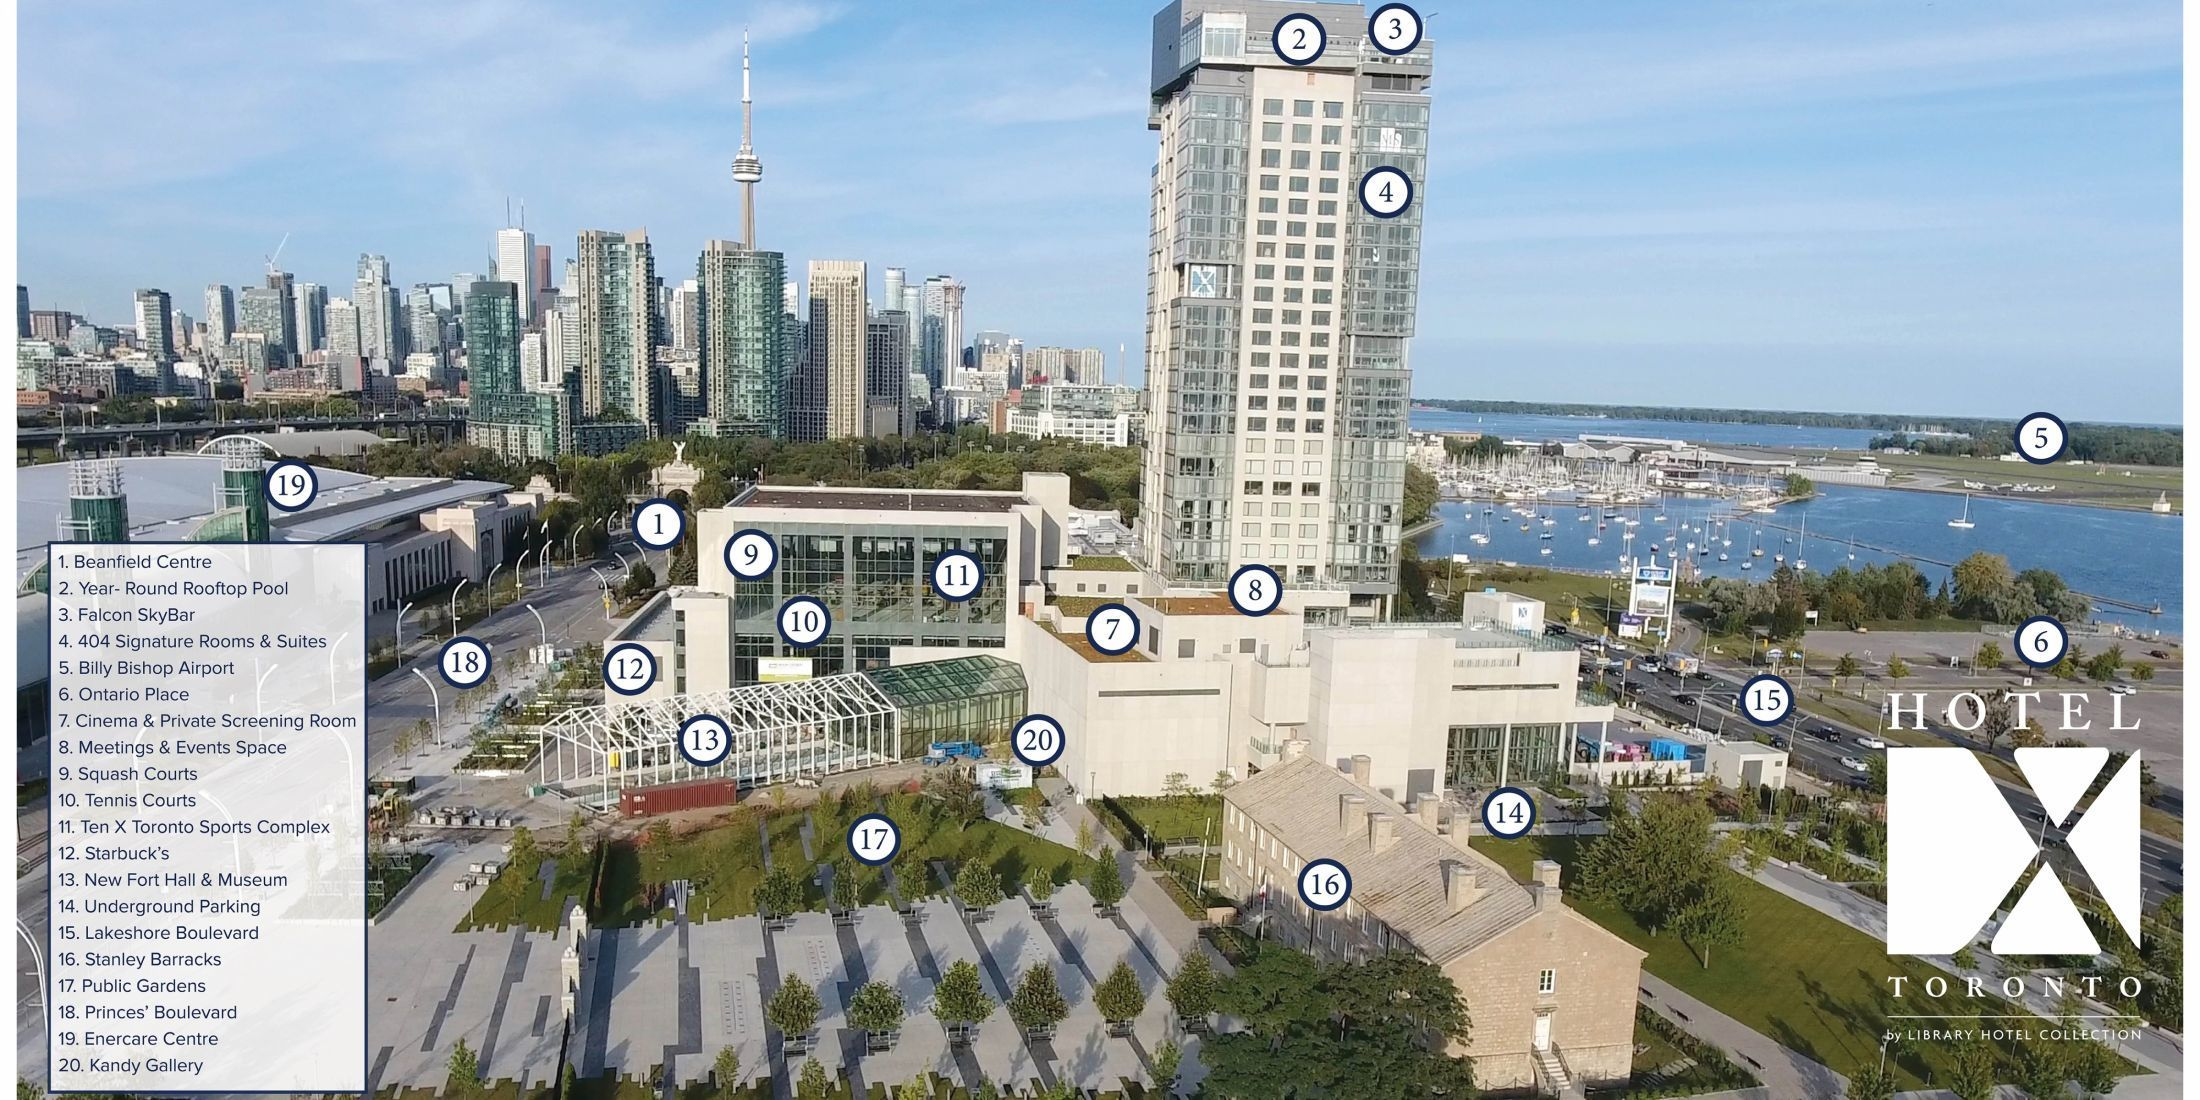 Hotel X Toronto Perimeter Map. Located on Exhibition Place.